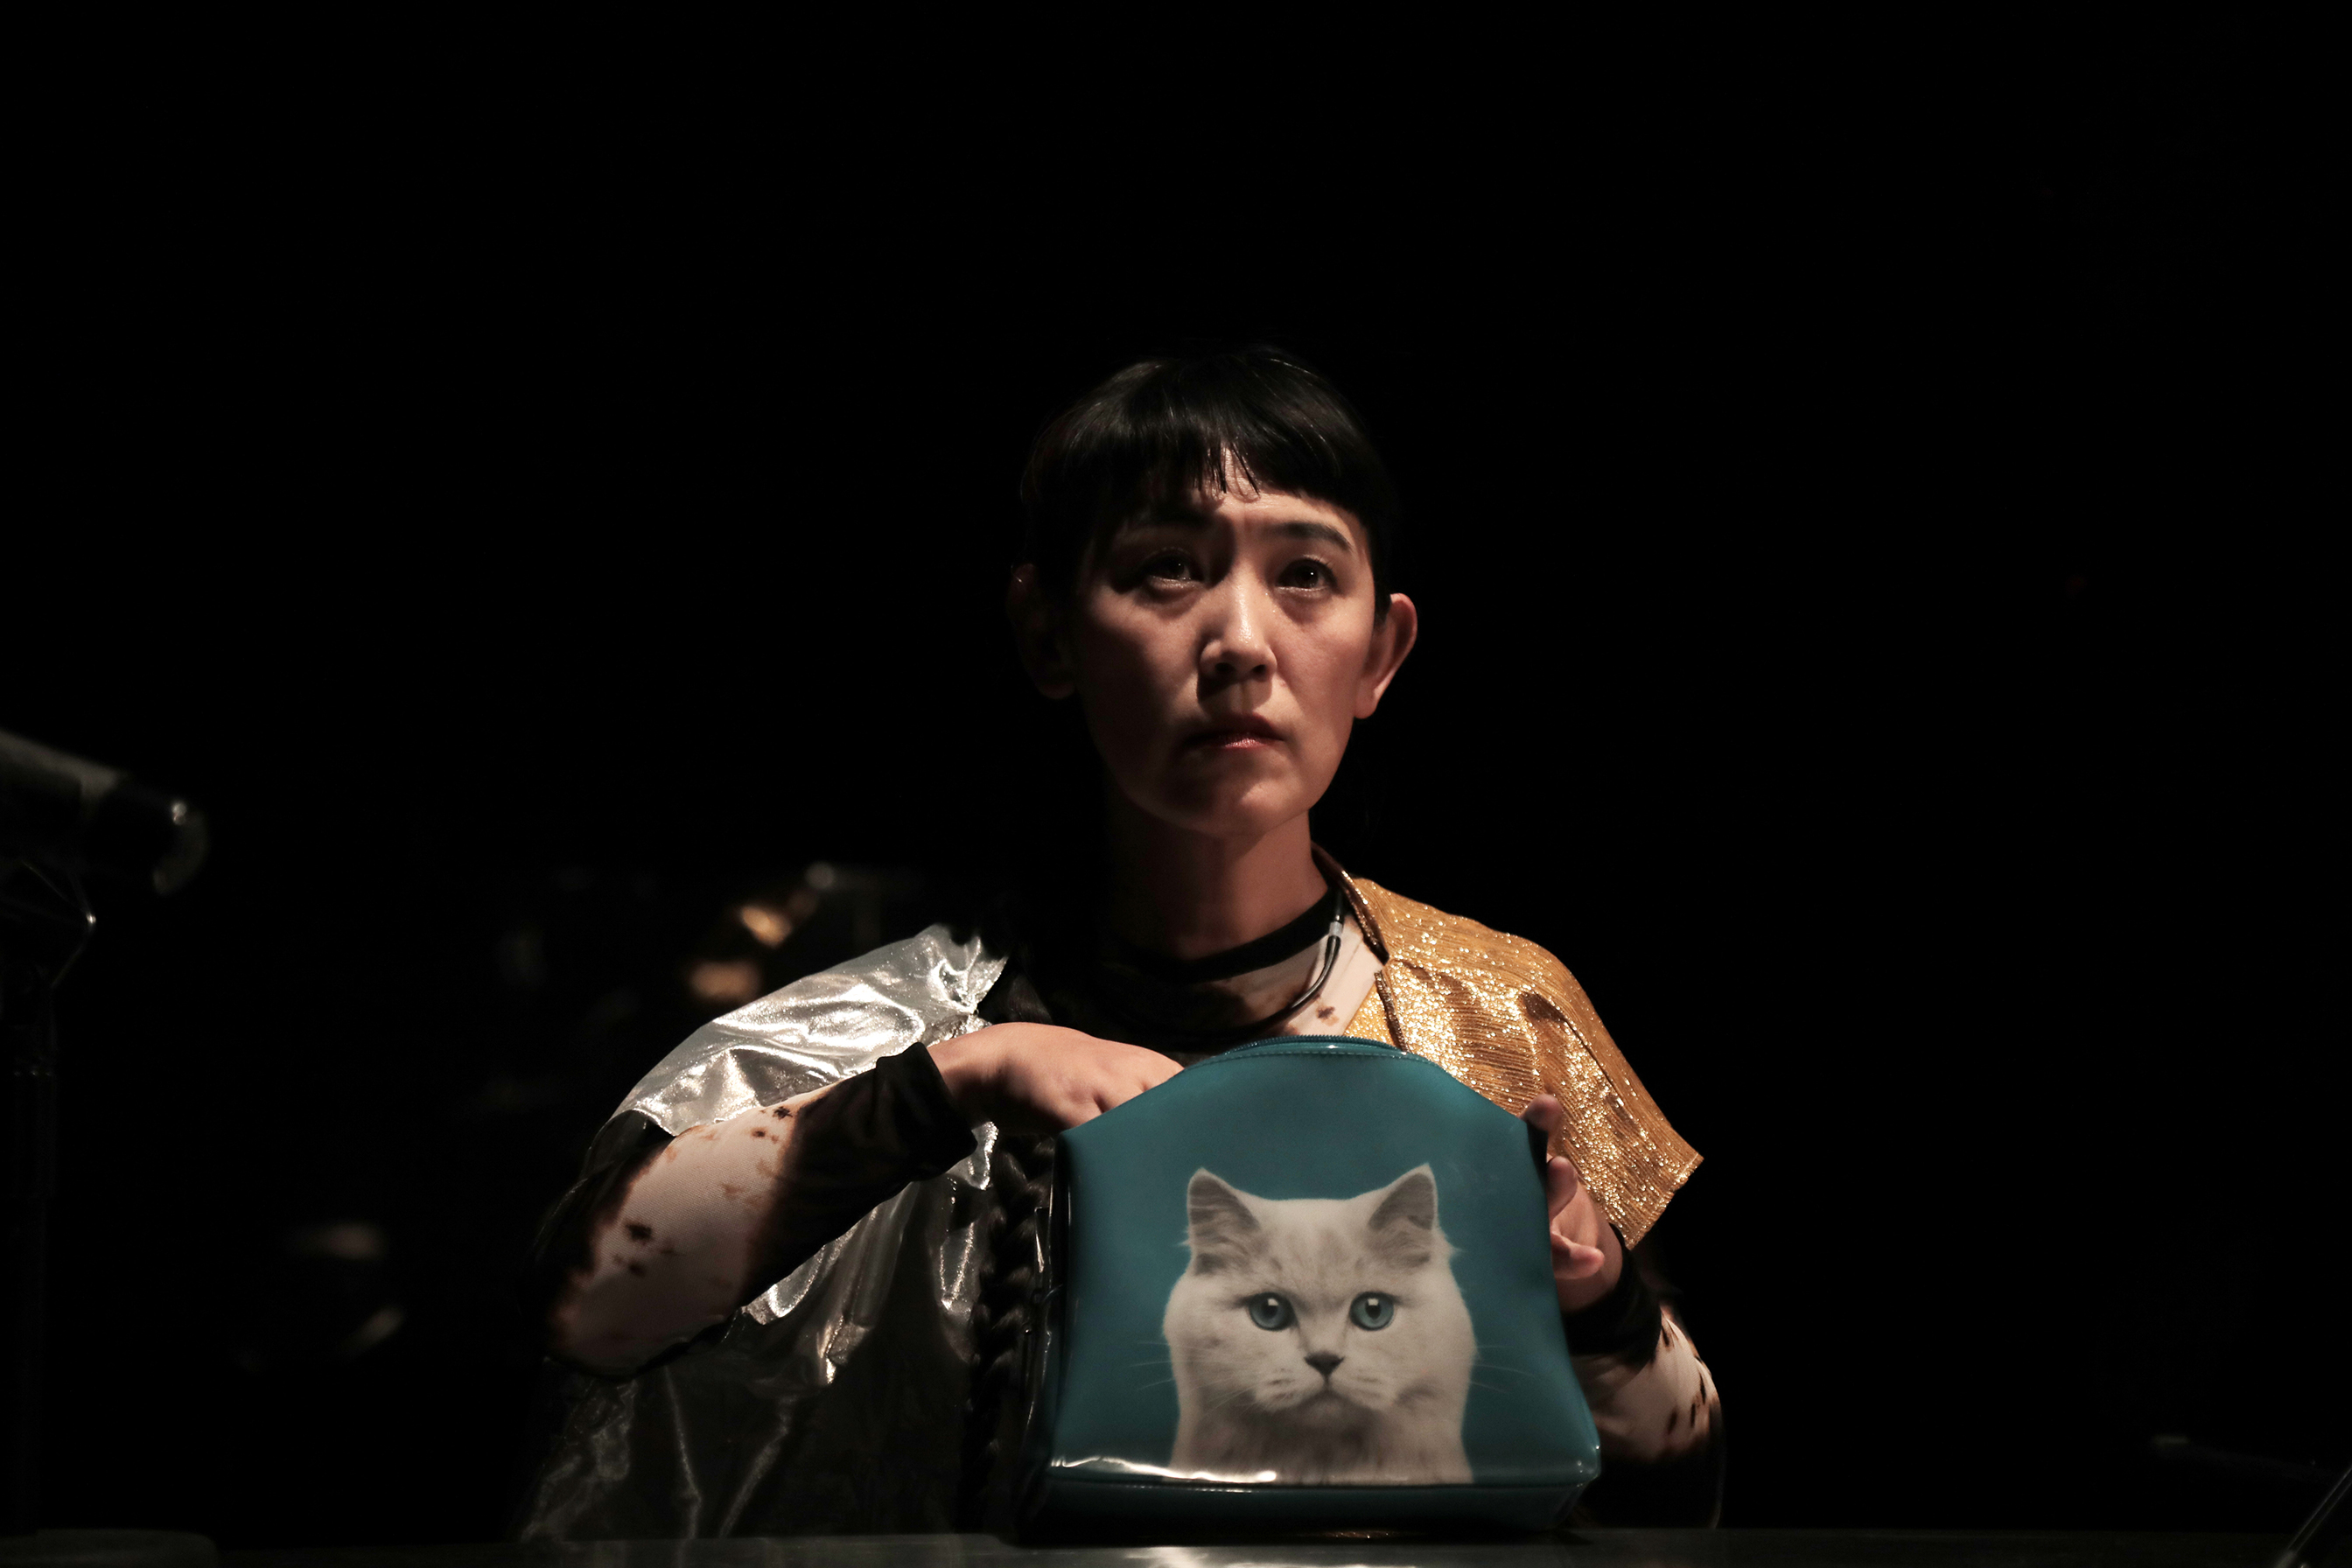 a woman holding a bag with a cat on it